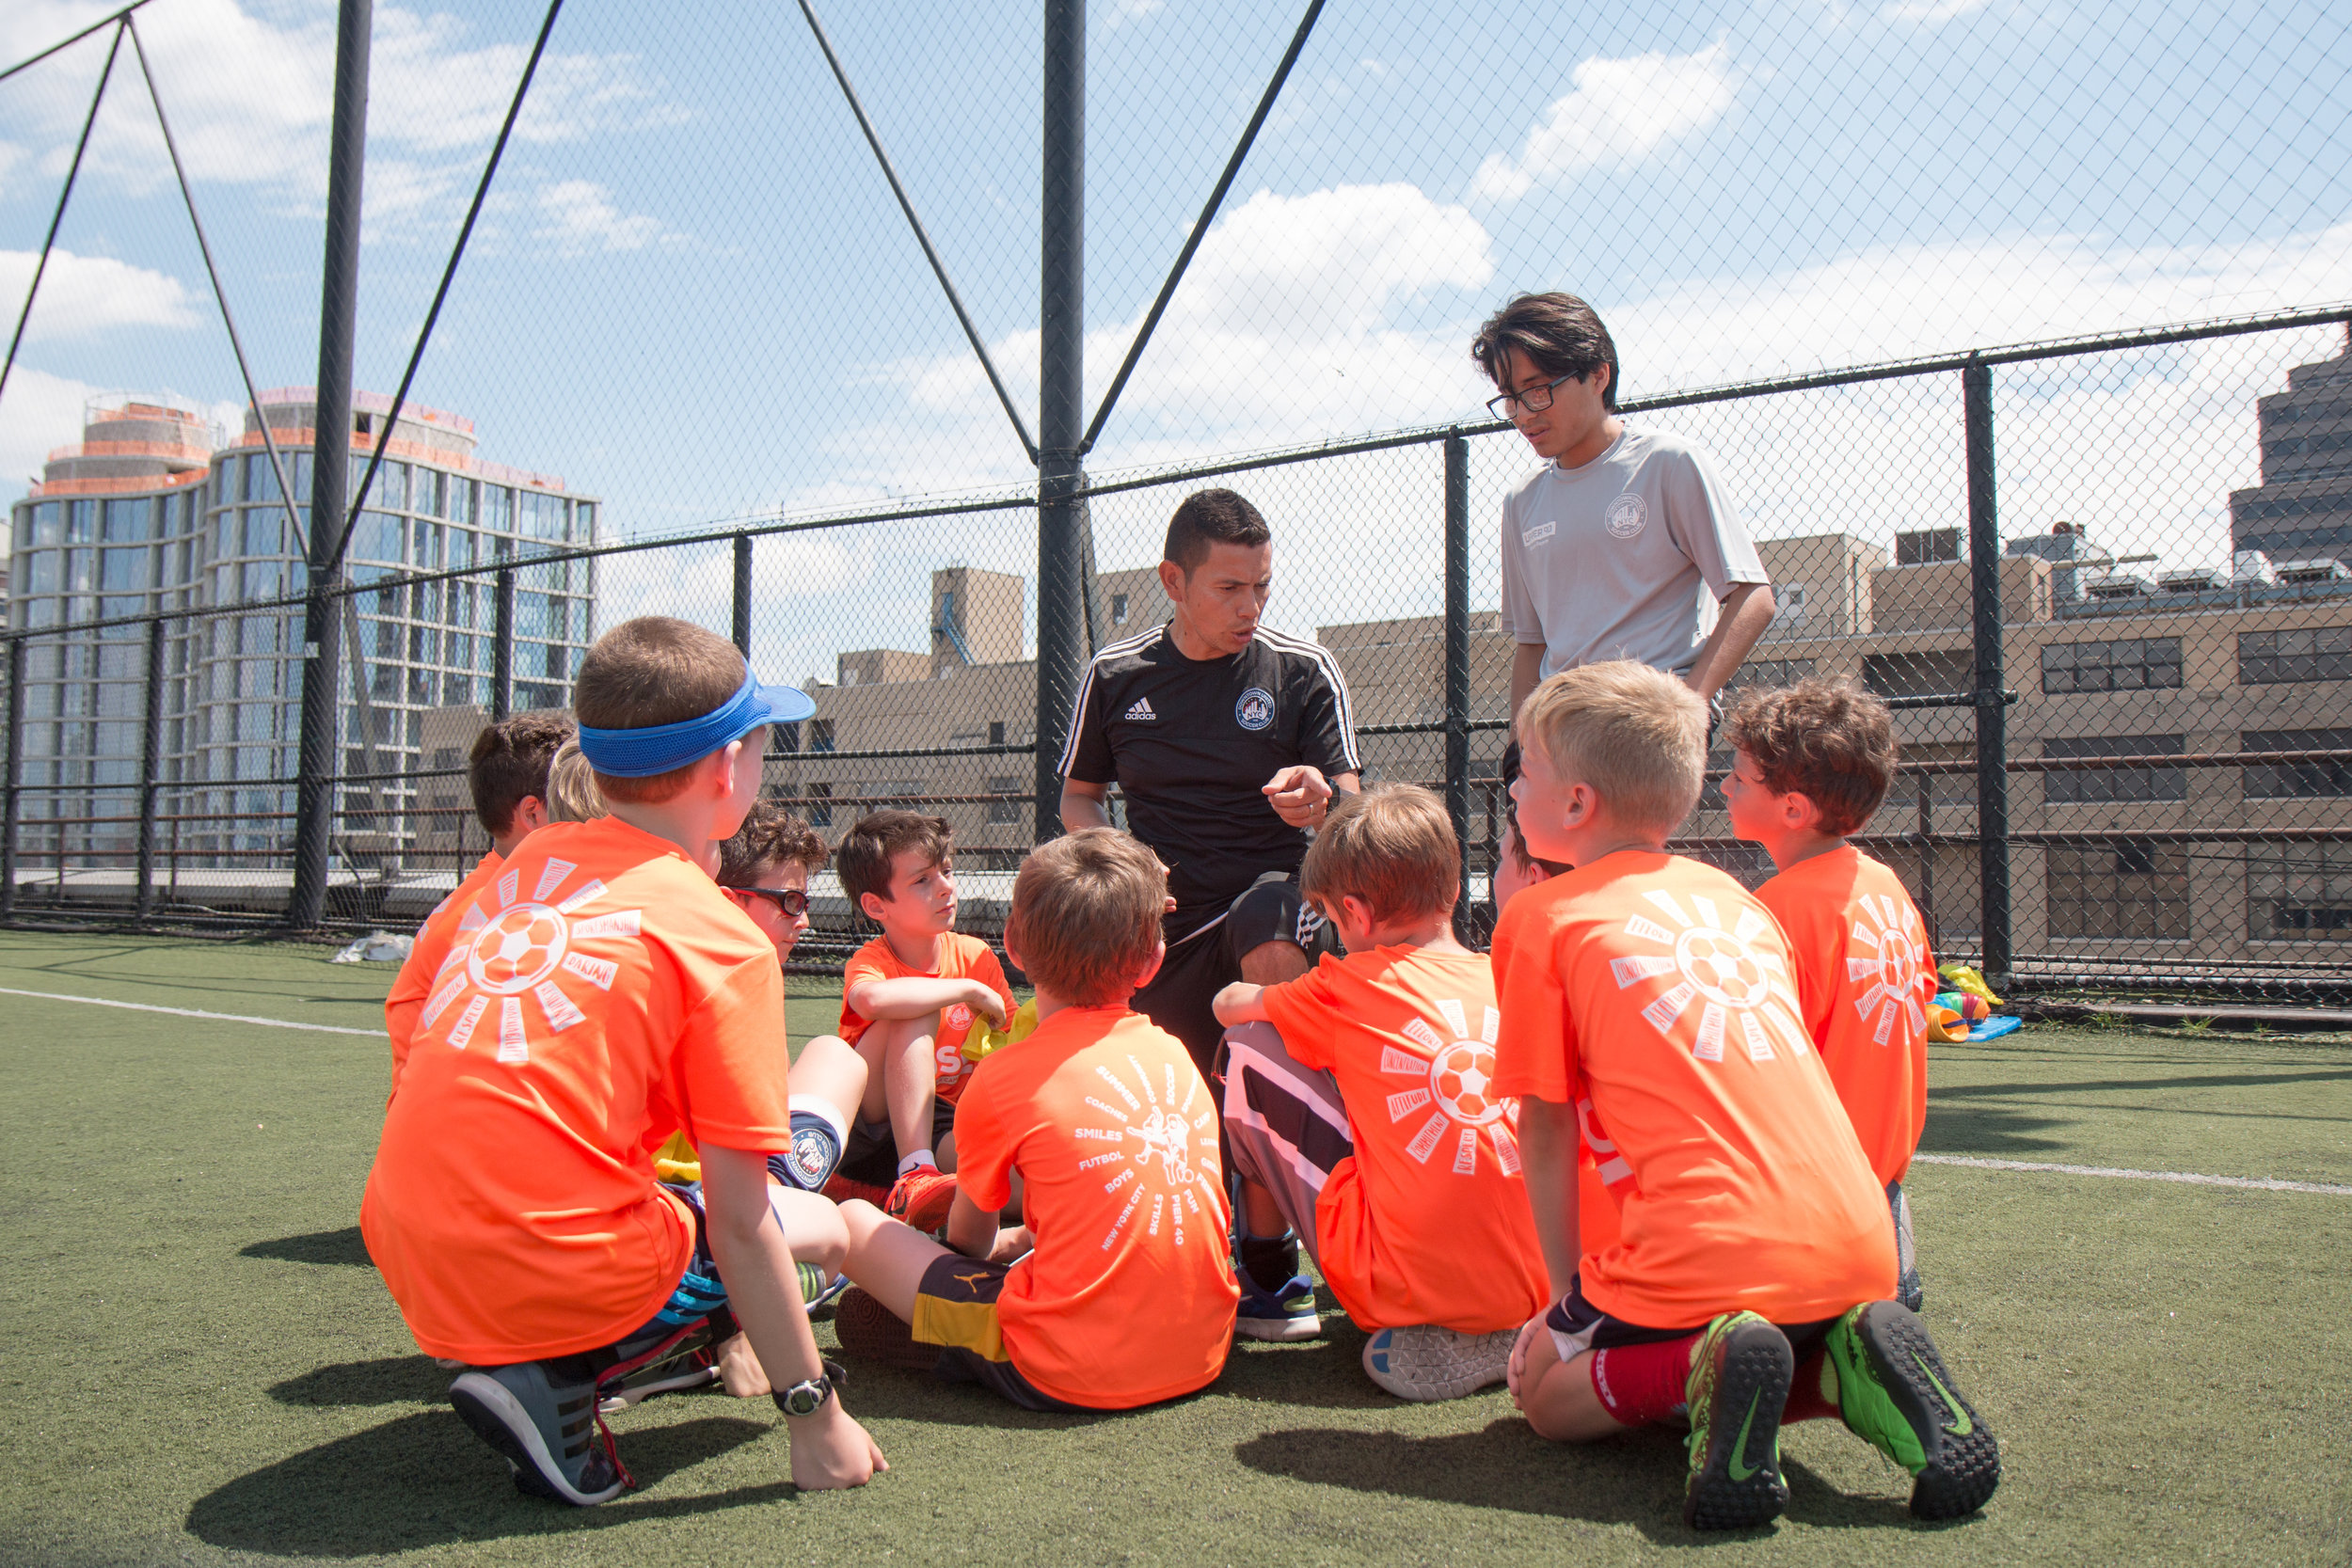 DUSC-downtown-united-soccer-club-youth-new-york-city-summer-camp–17–06.jpg